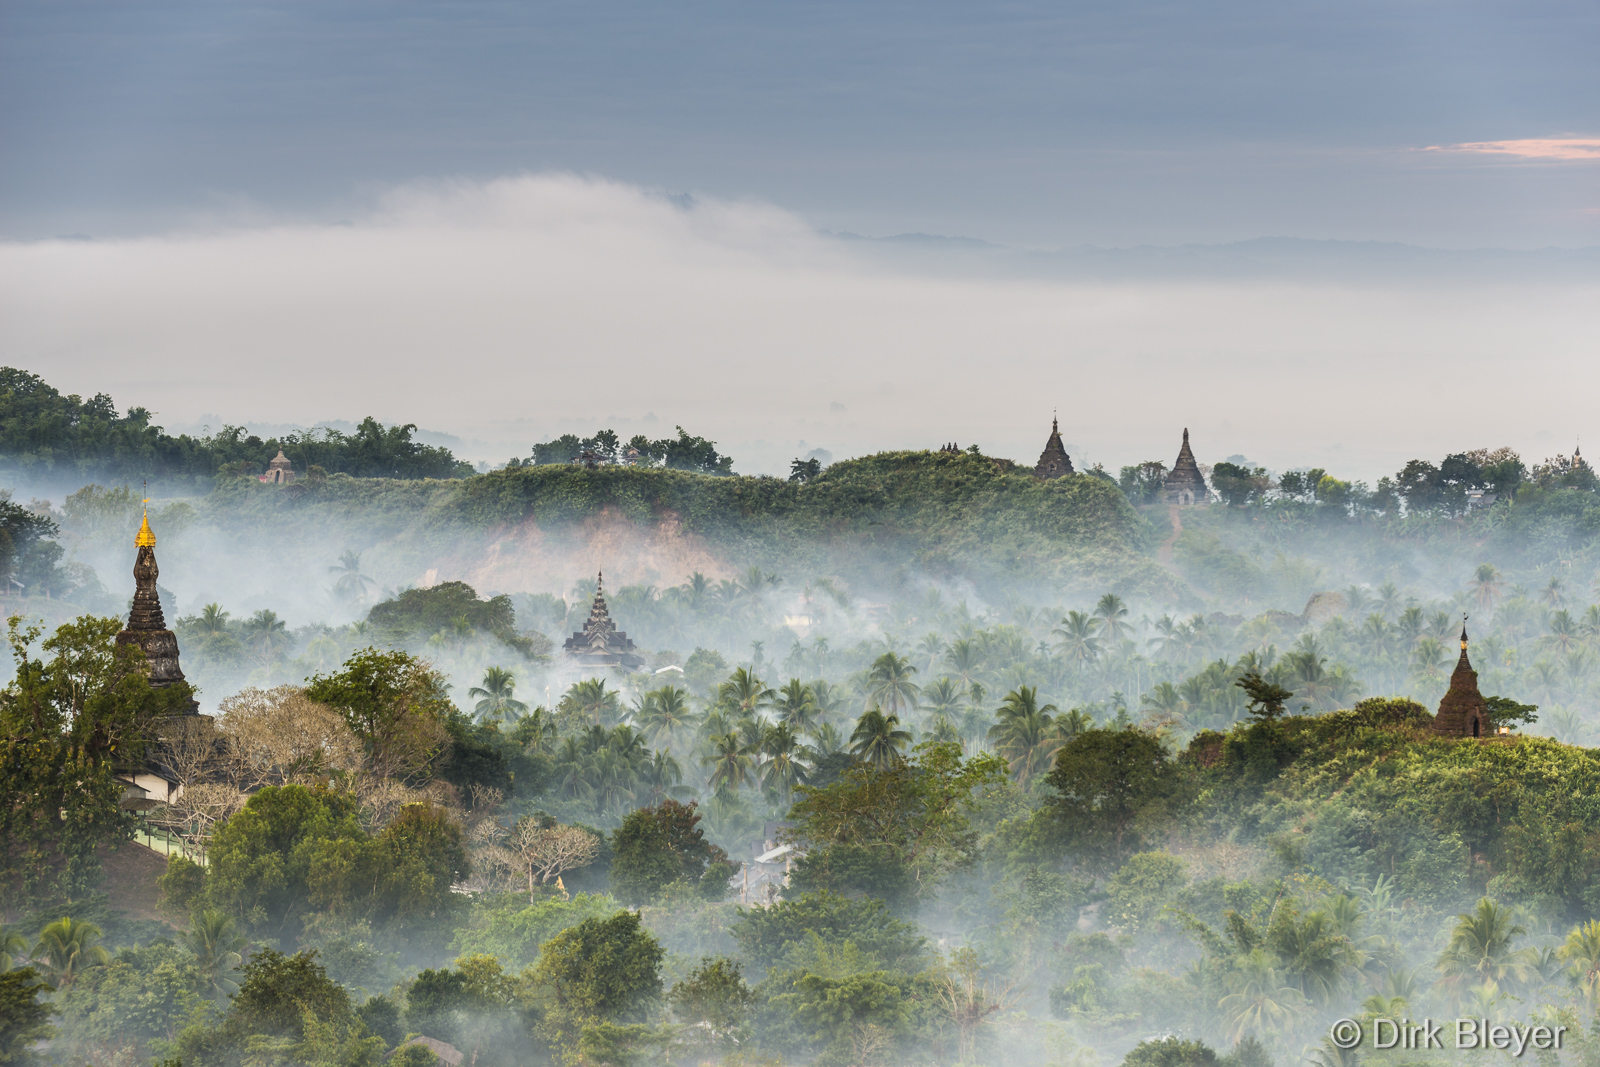 Morgennebel in Mrauk U